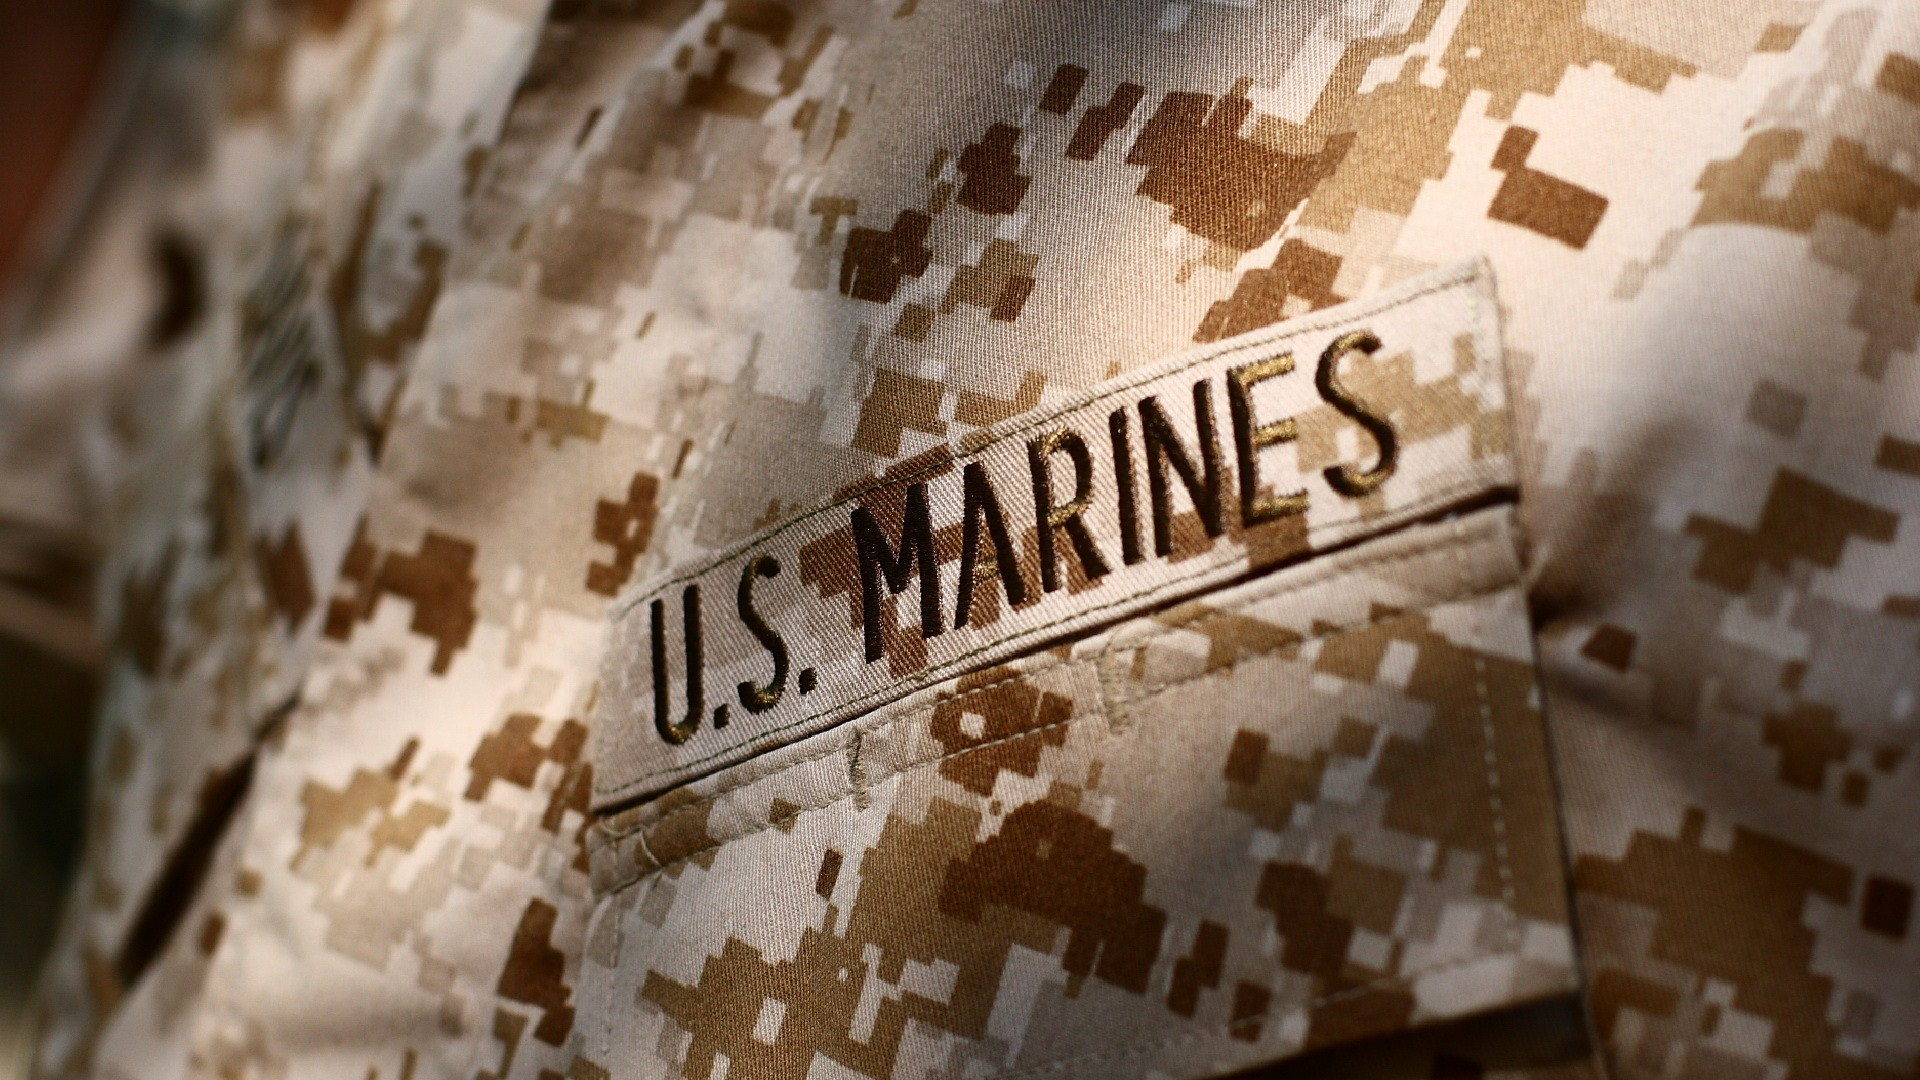 marines full hd wallpaper and background image